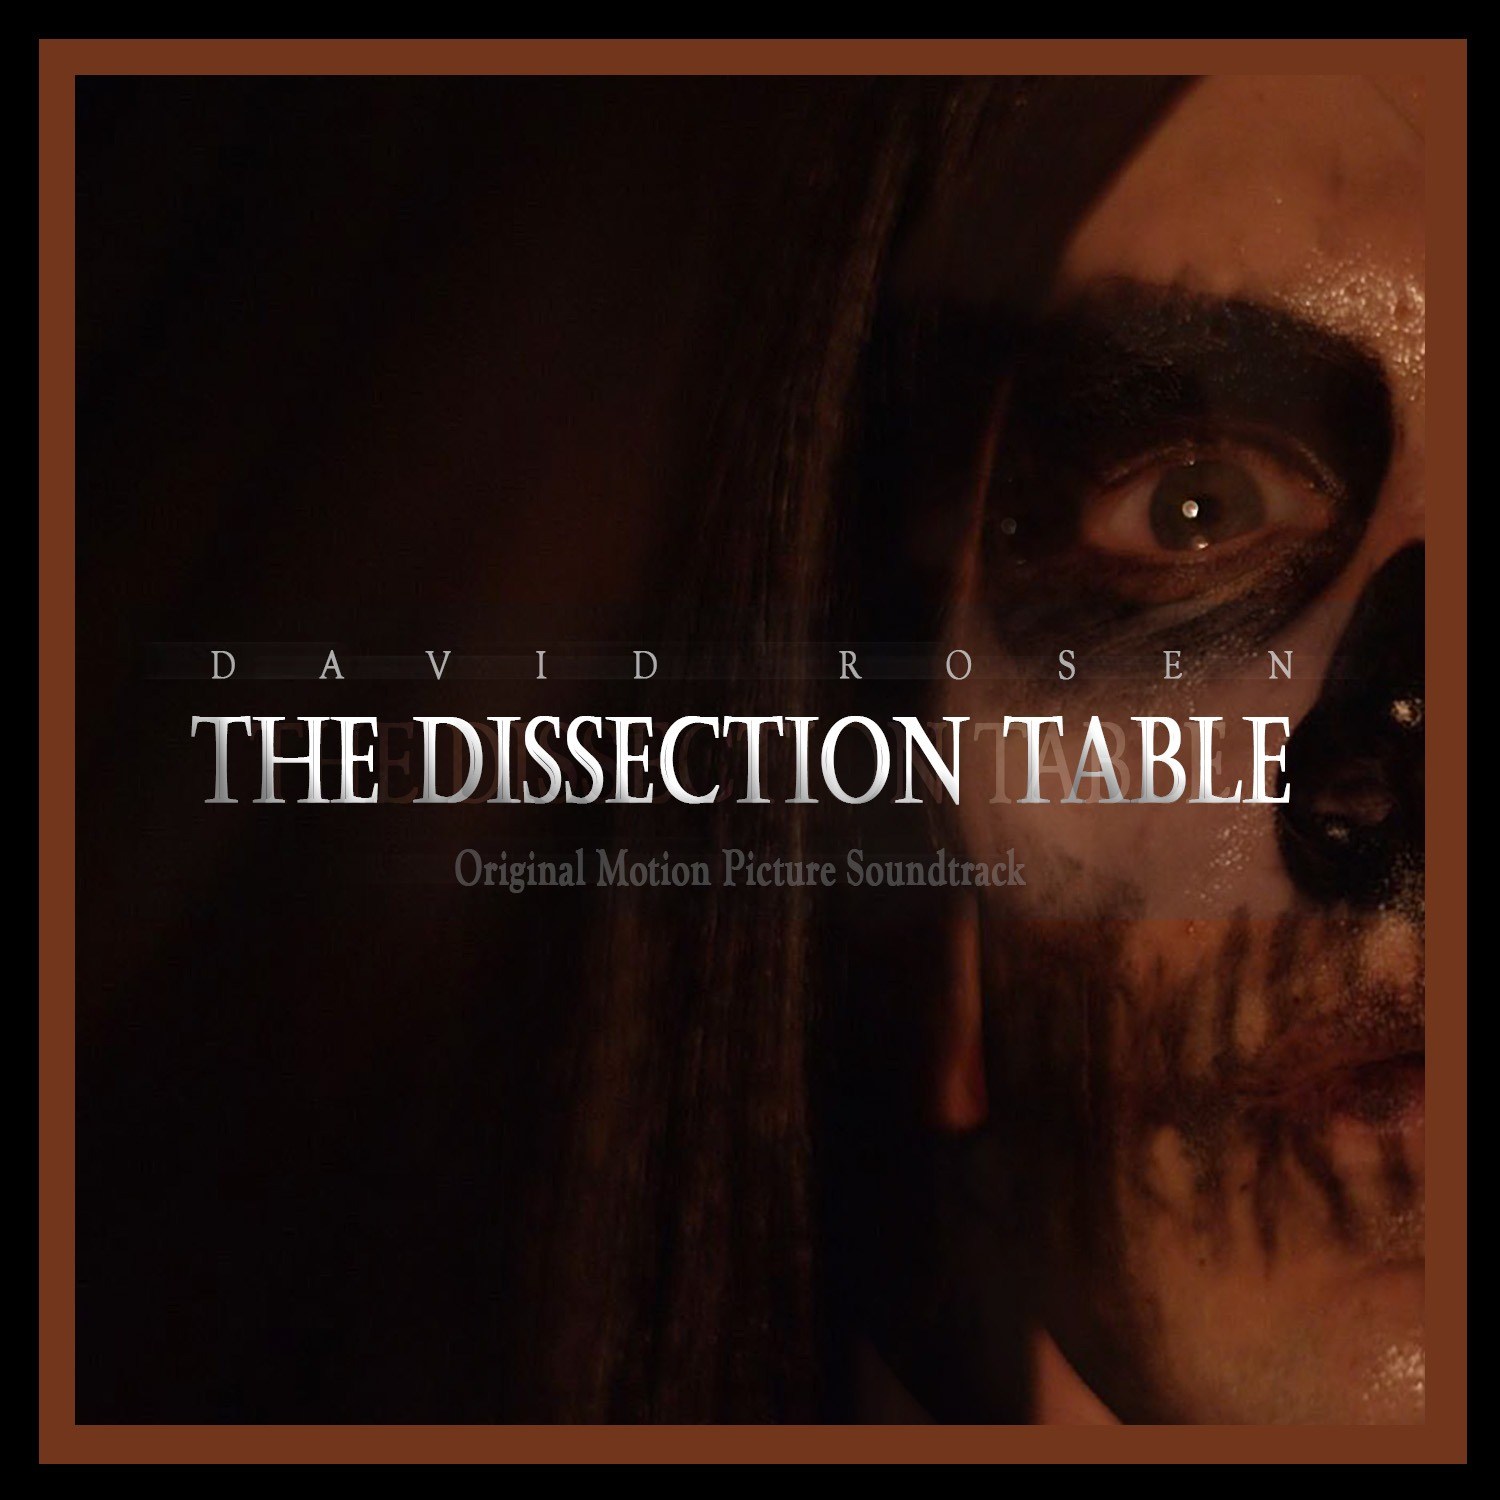 The Dissection Table